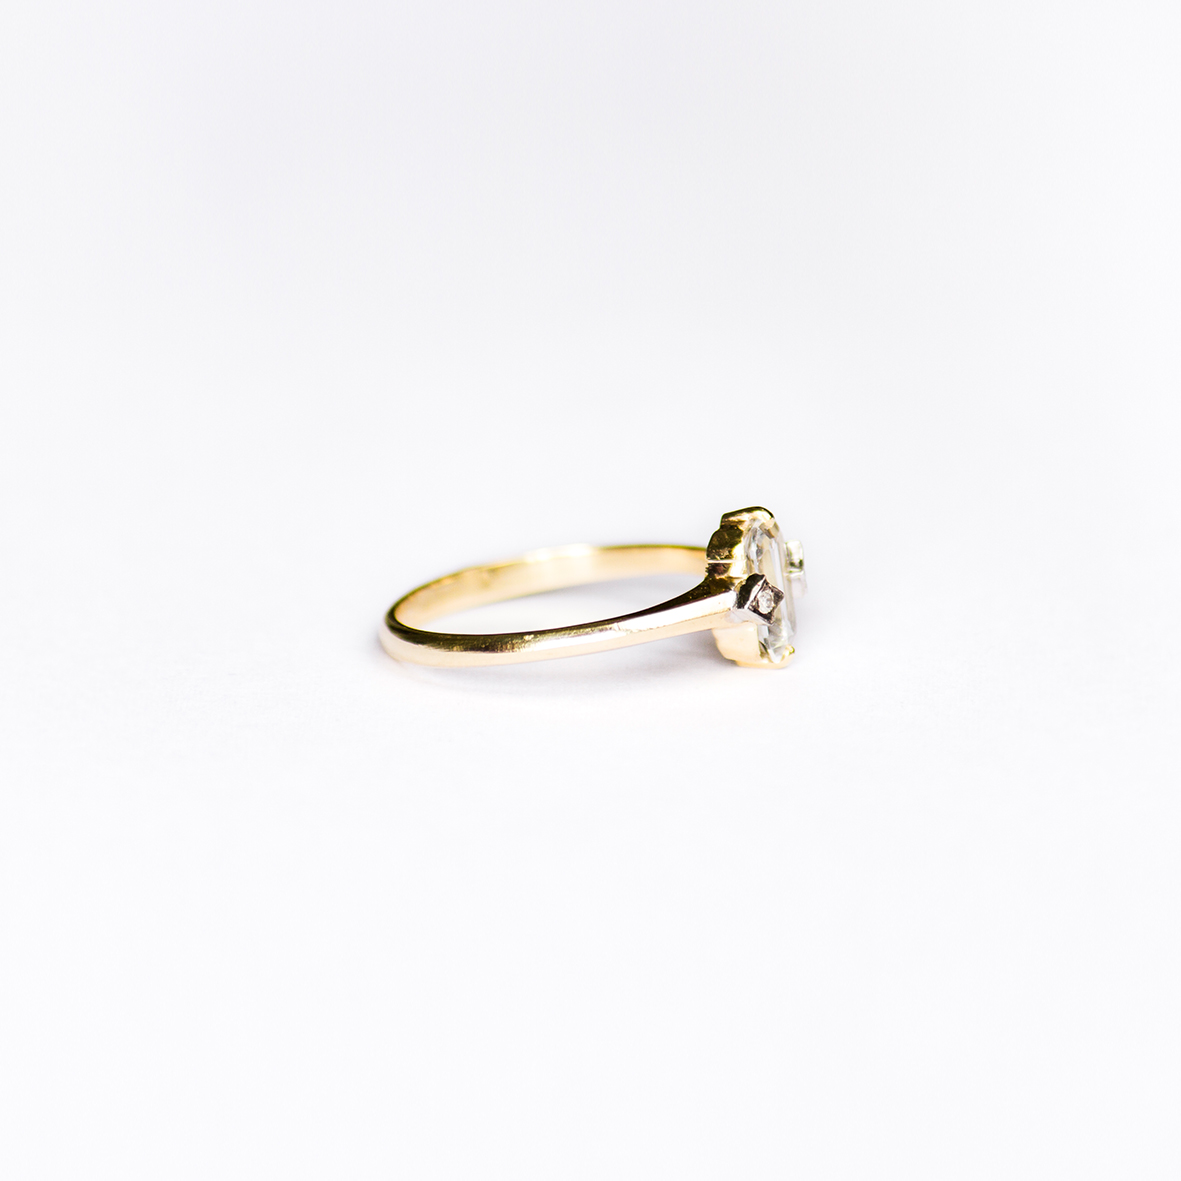 2. OONA_engagement_ficha2_single sapphire ring 2 copia